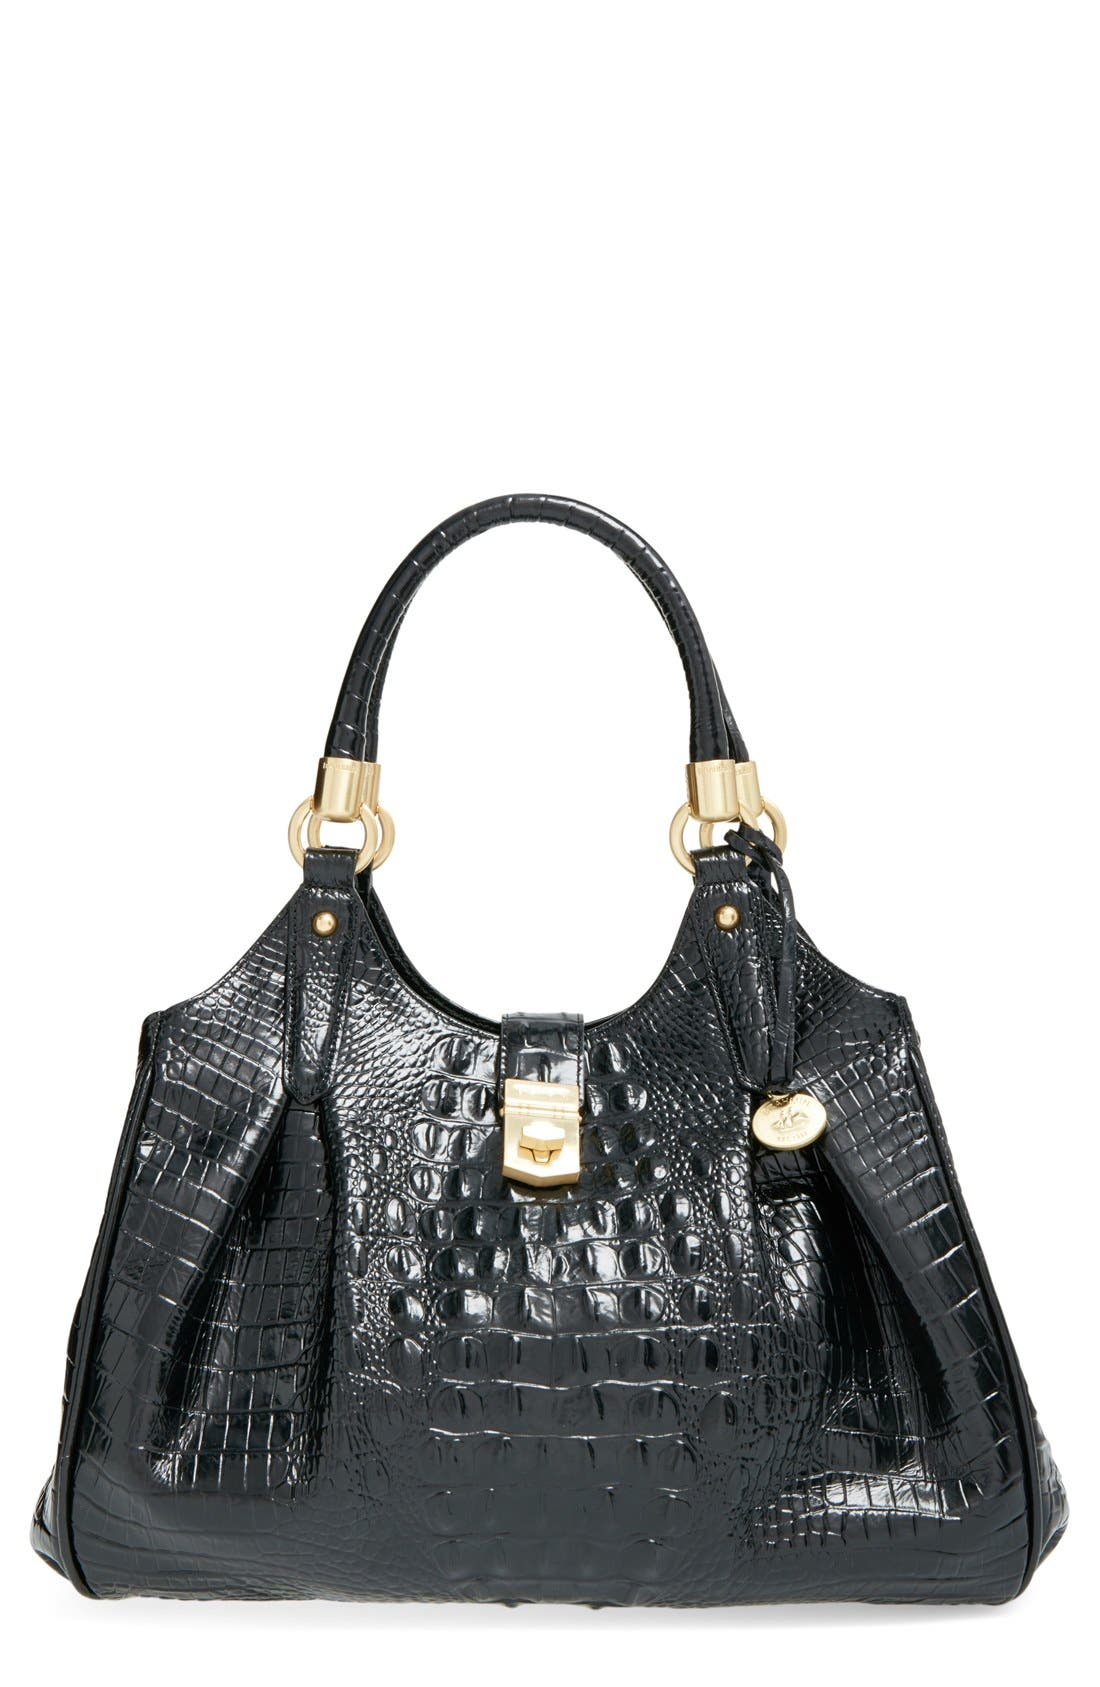 Alternate Image 1 Selected - Brahmin Elisa Croc Embossed Leather Shoulder Bag